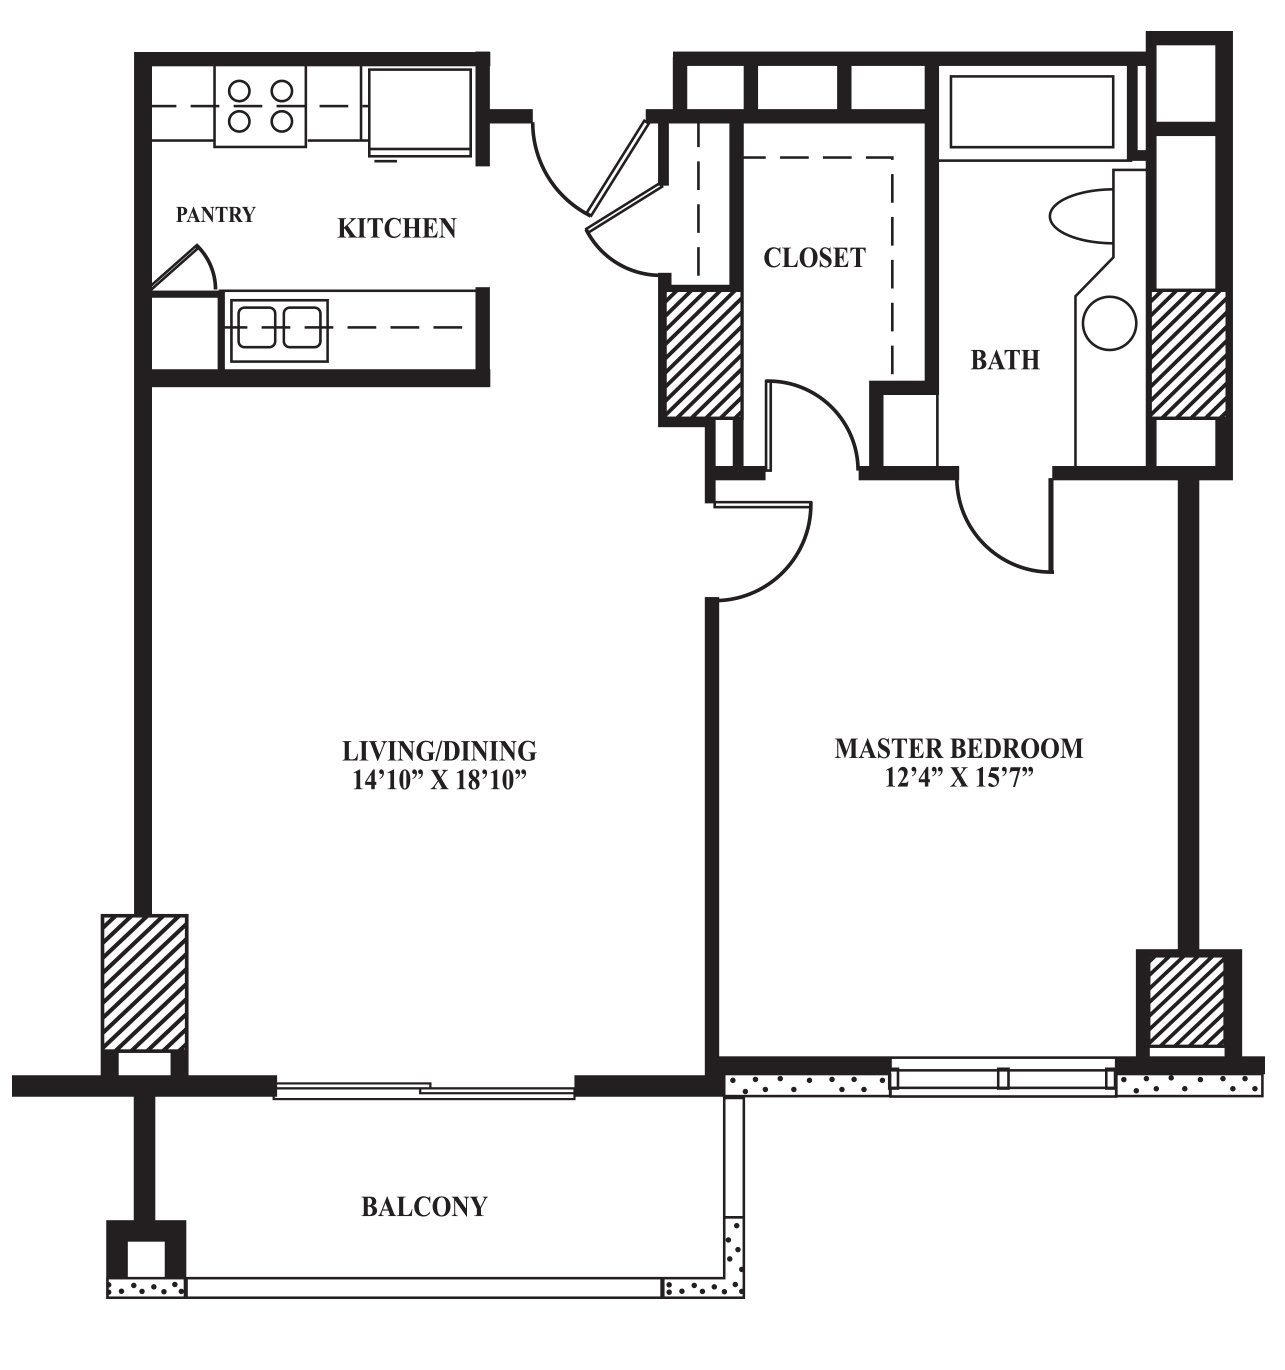 Master bathroom with closet floor plans for Master bath and closet plans